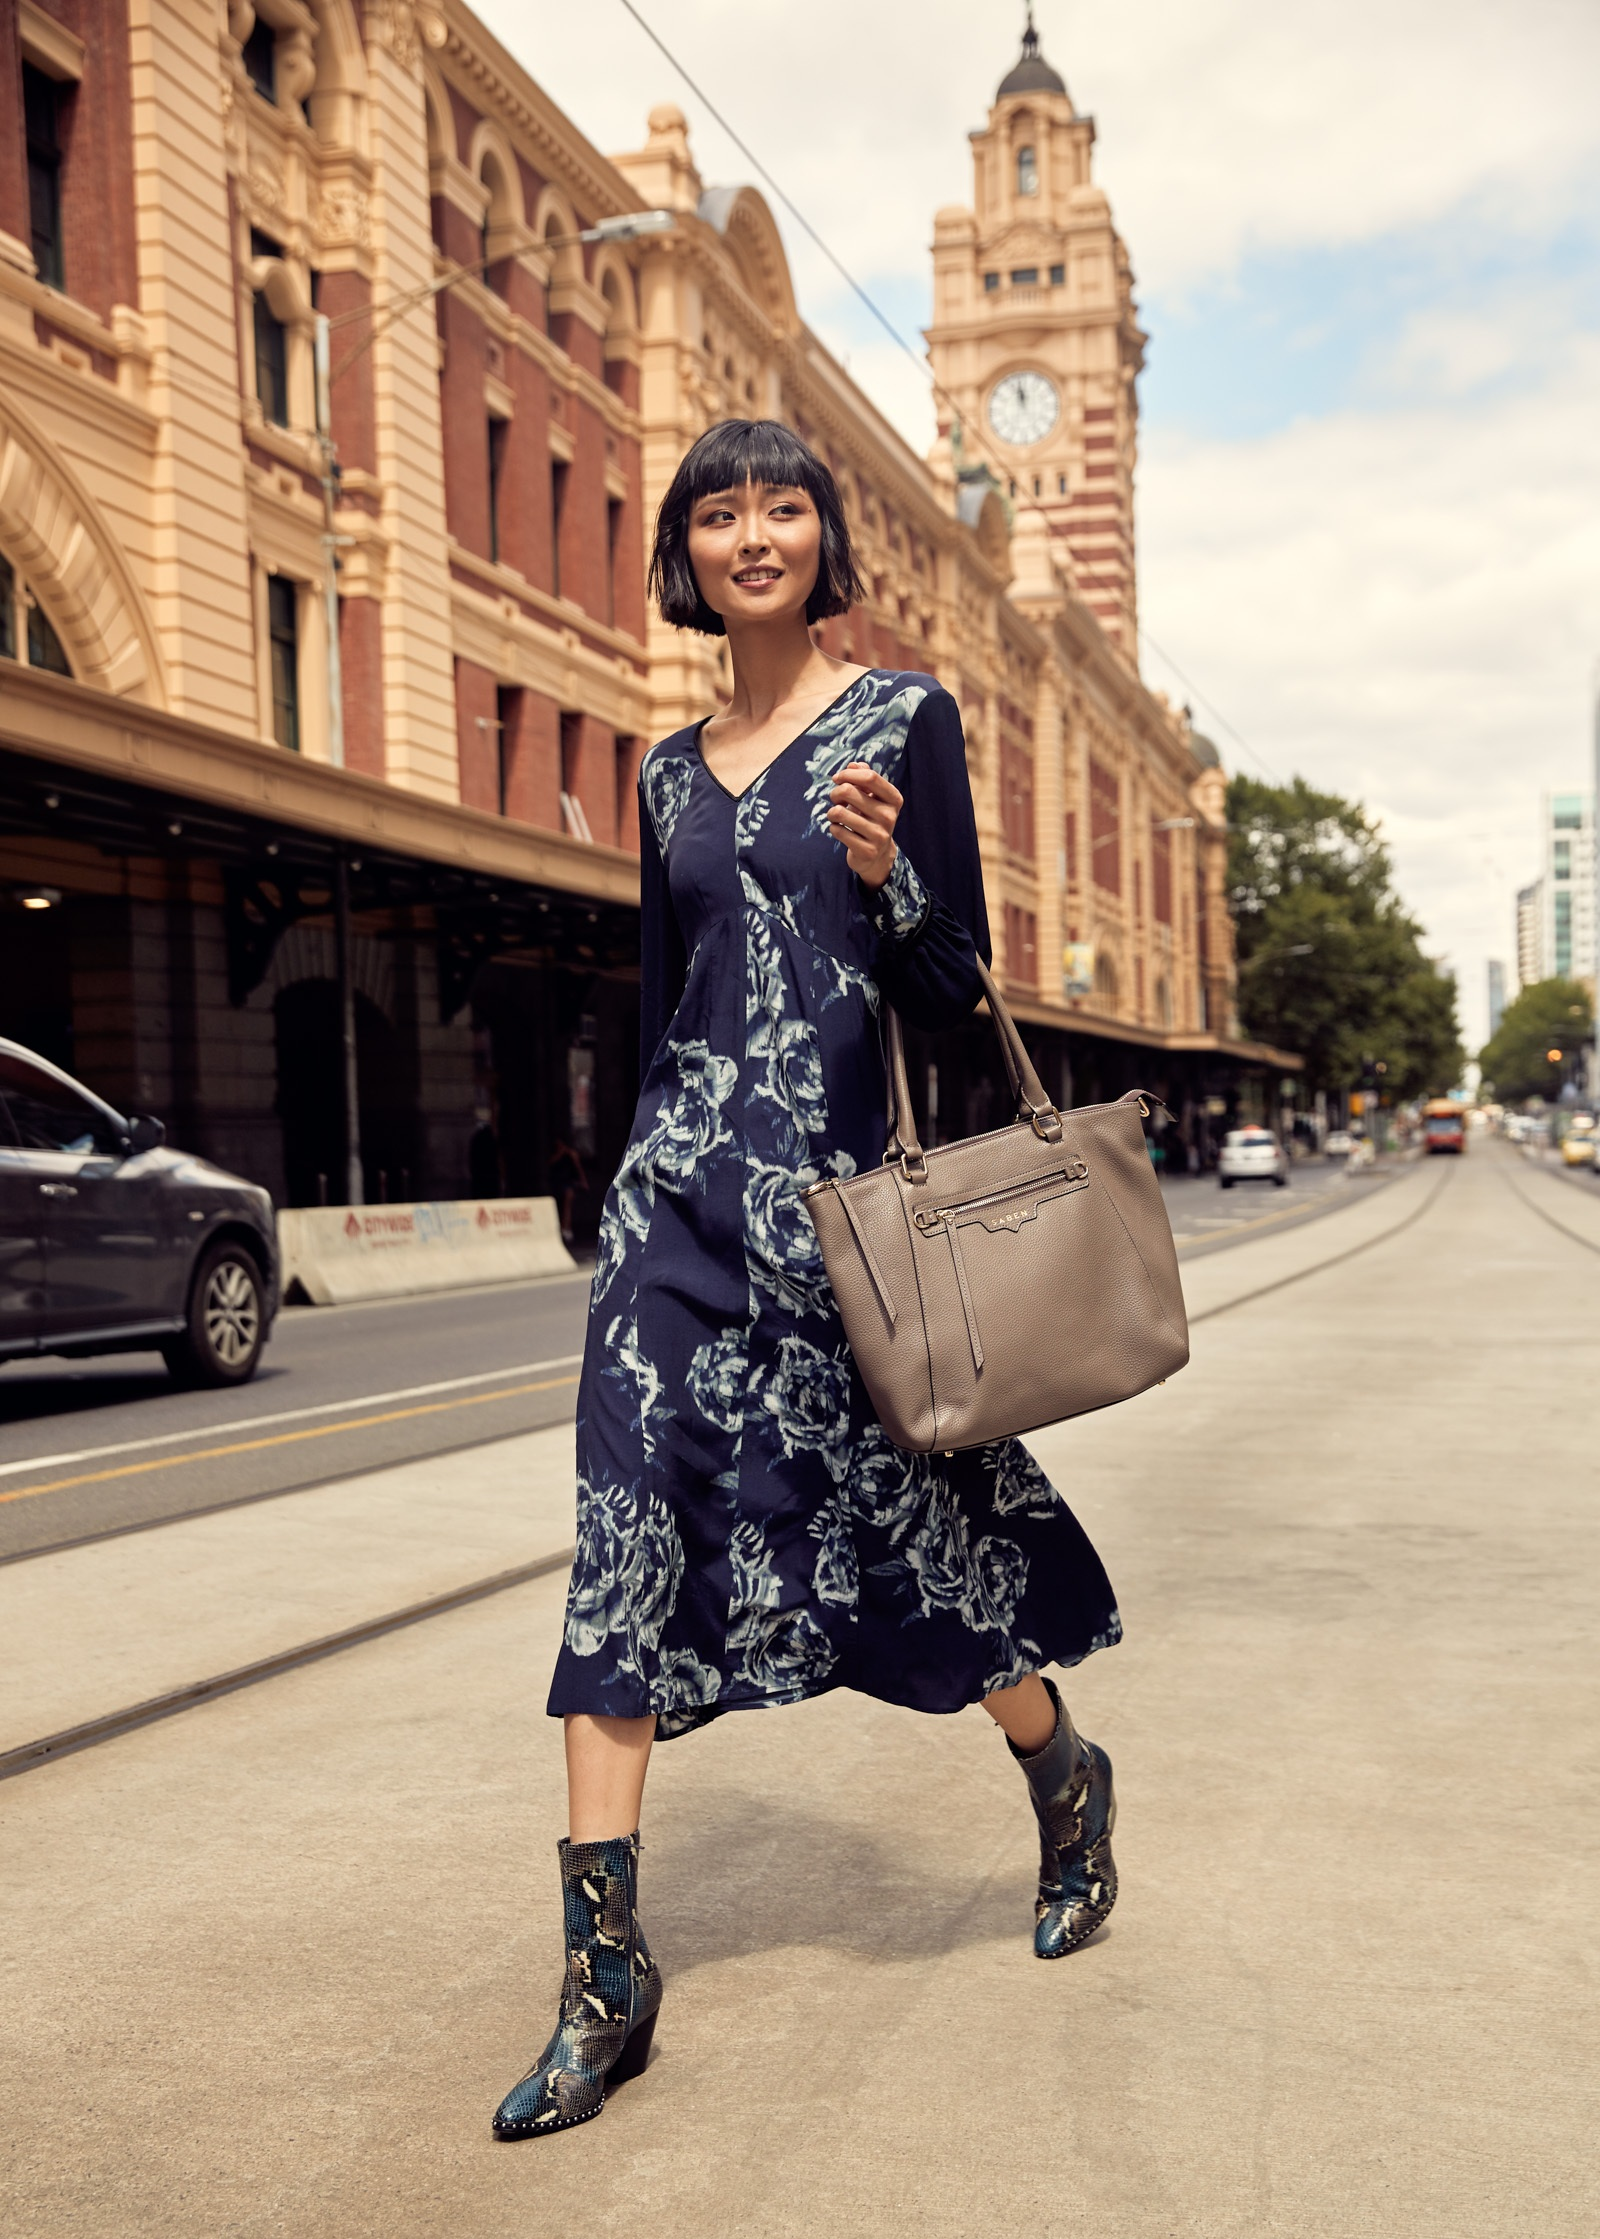 Model  Cynthia Wu  photographed outside Flinders Station in Melbourne. The BeautyEQ travelled to Melbourne with thanks to   Visit Melbourne  .